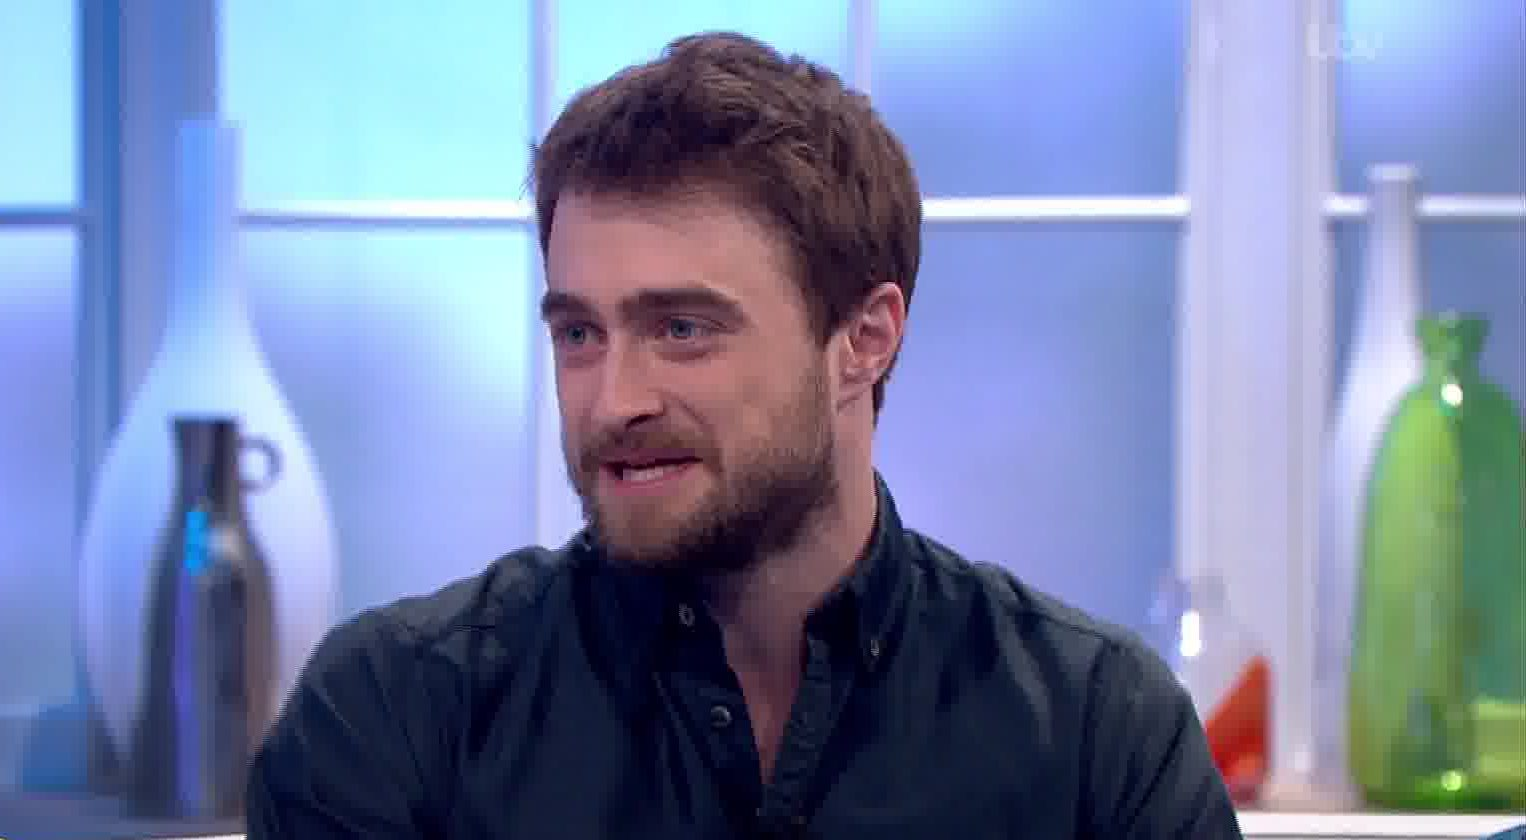 Daniel Radcliffe sacrificed his health by not eating for two days during harrowing Jungle filming